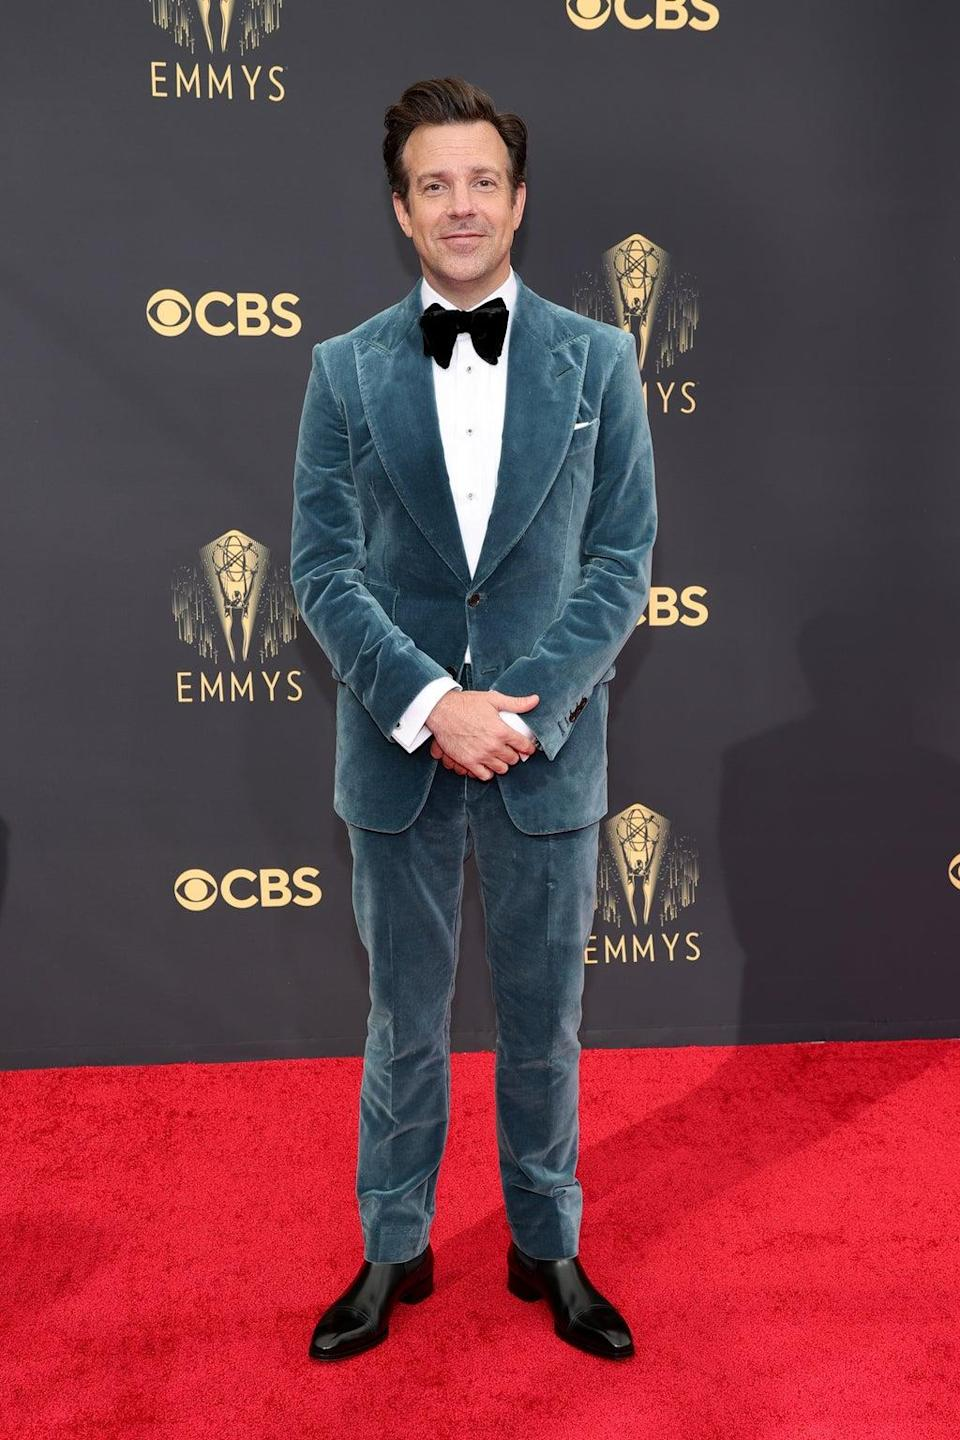 Jason Sudeikis at the Emmy Awards 2021 (Getty Images)